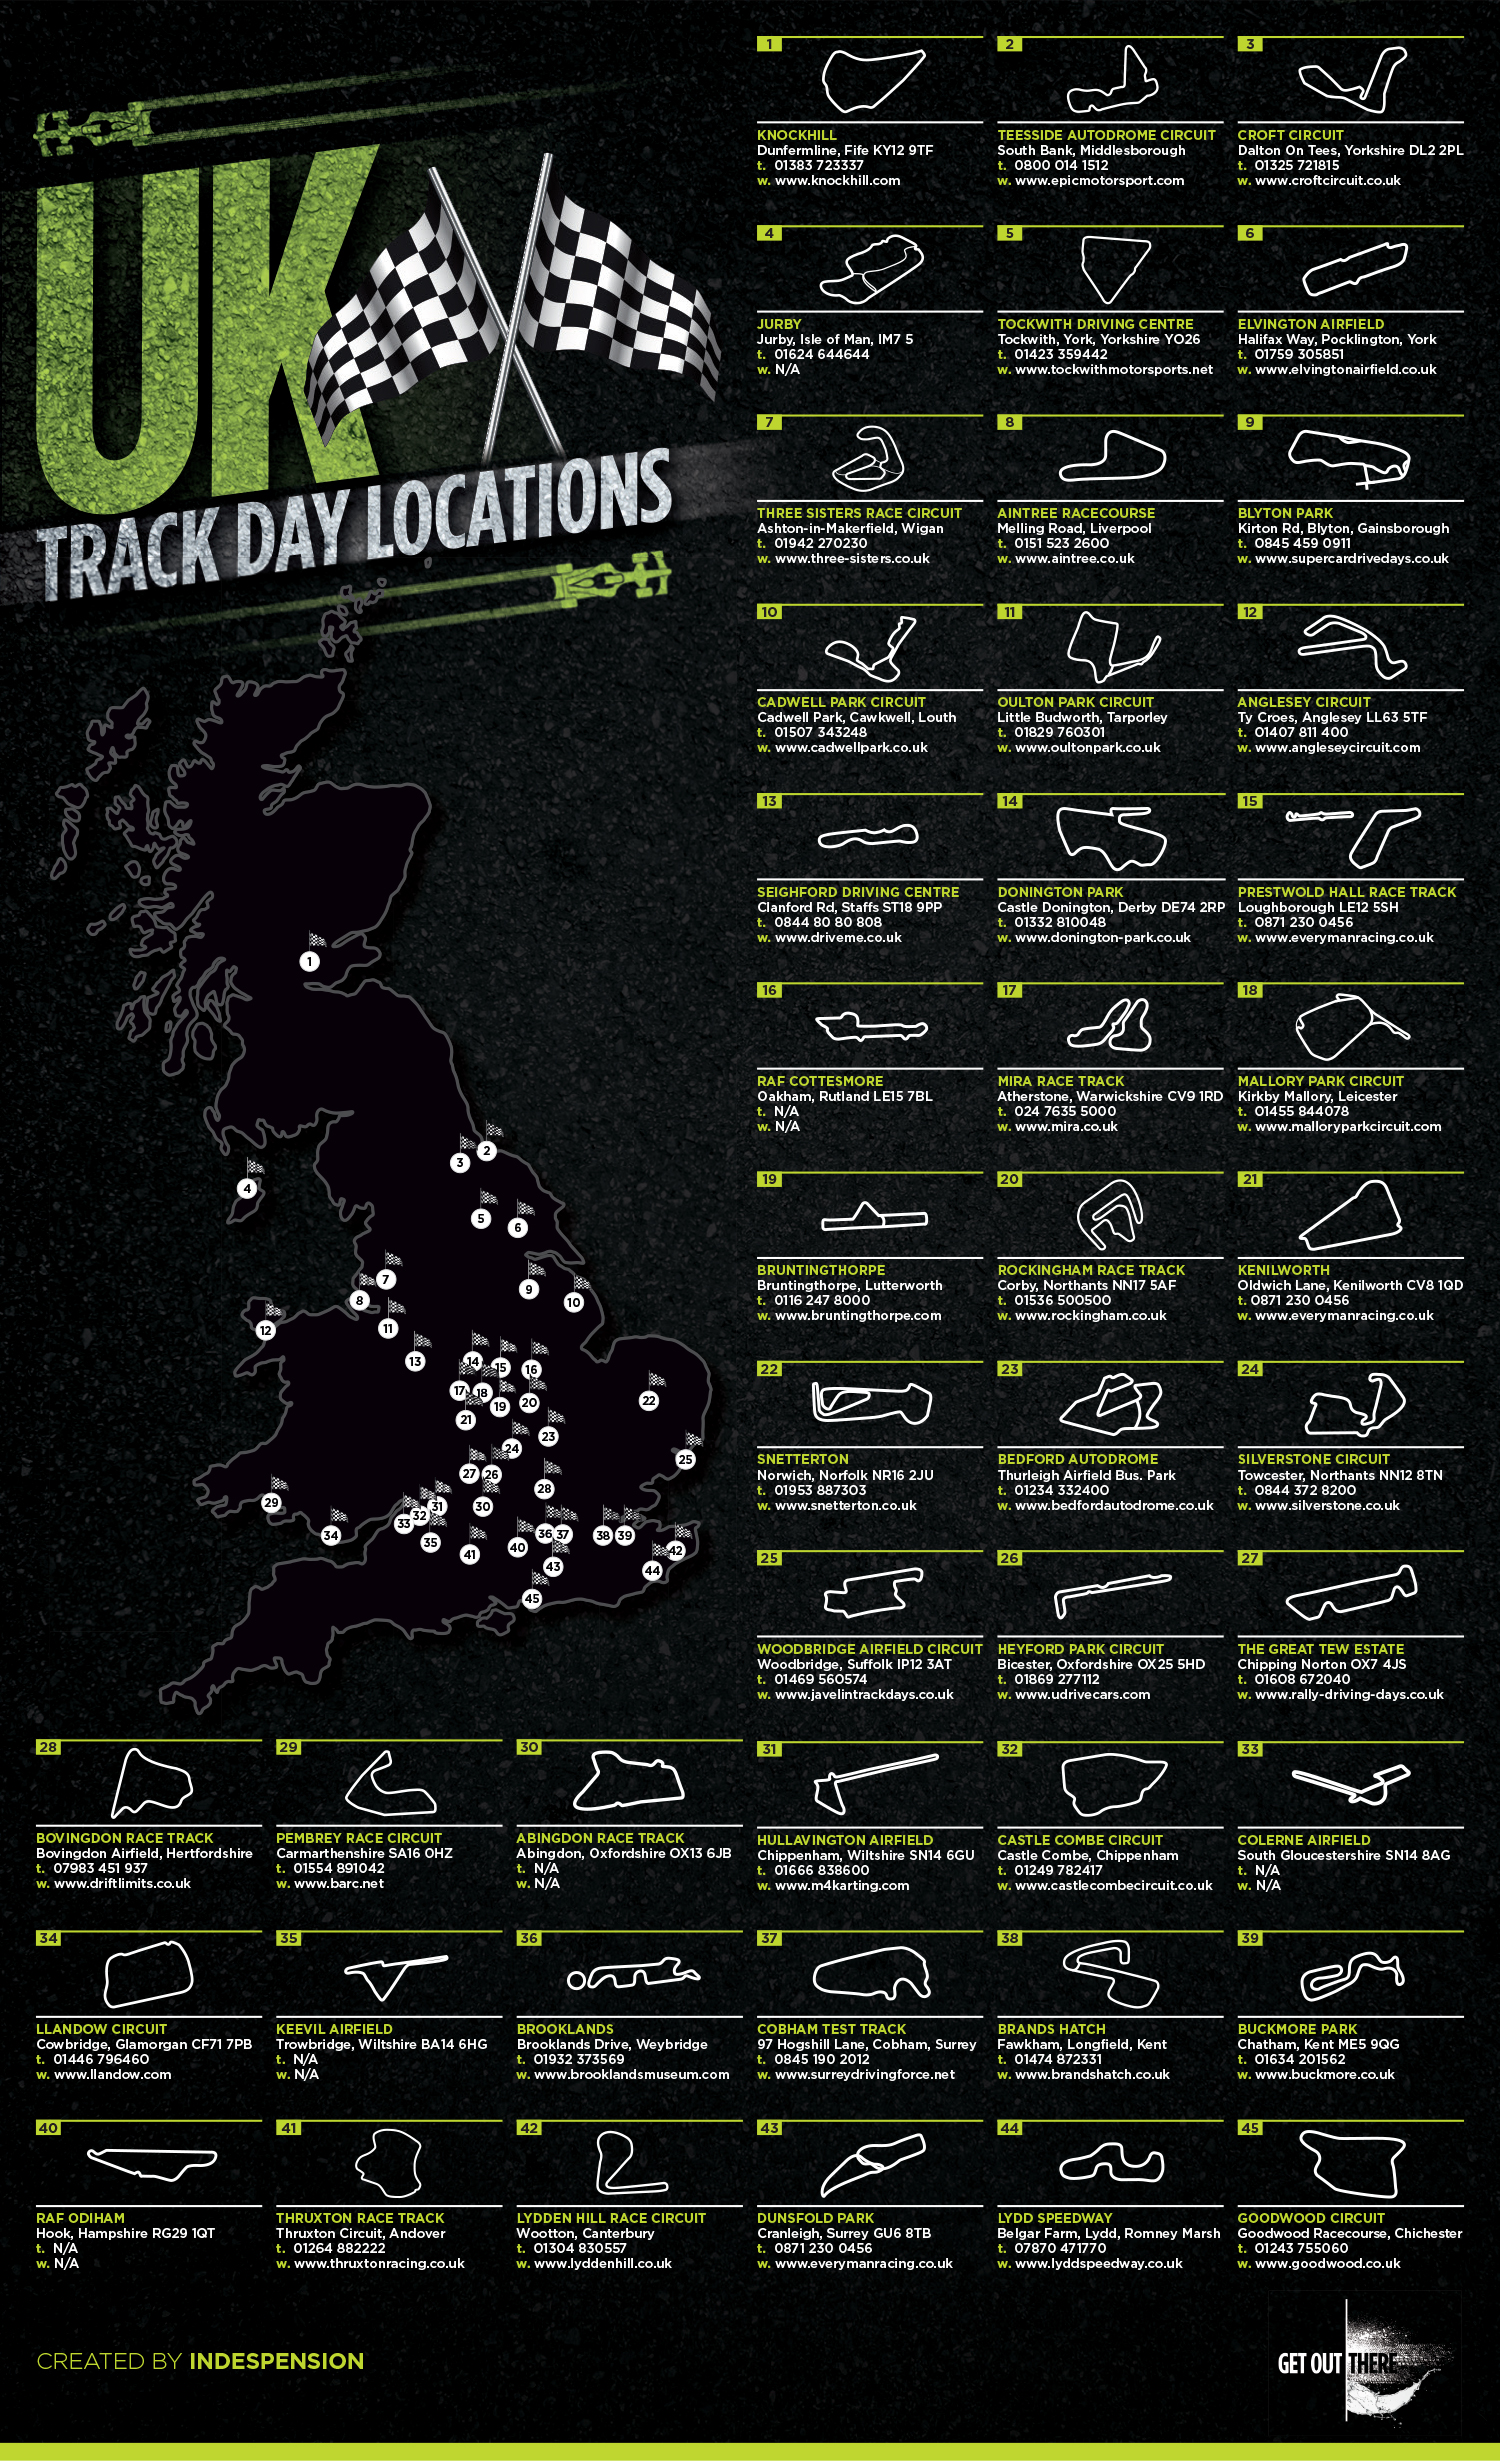 UK Track Day Guide